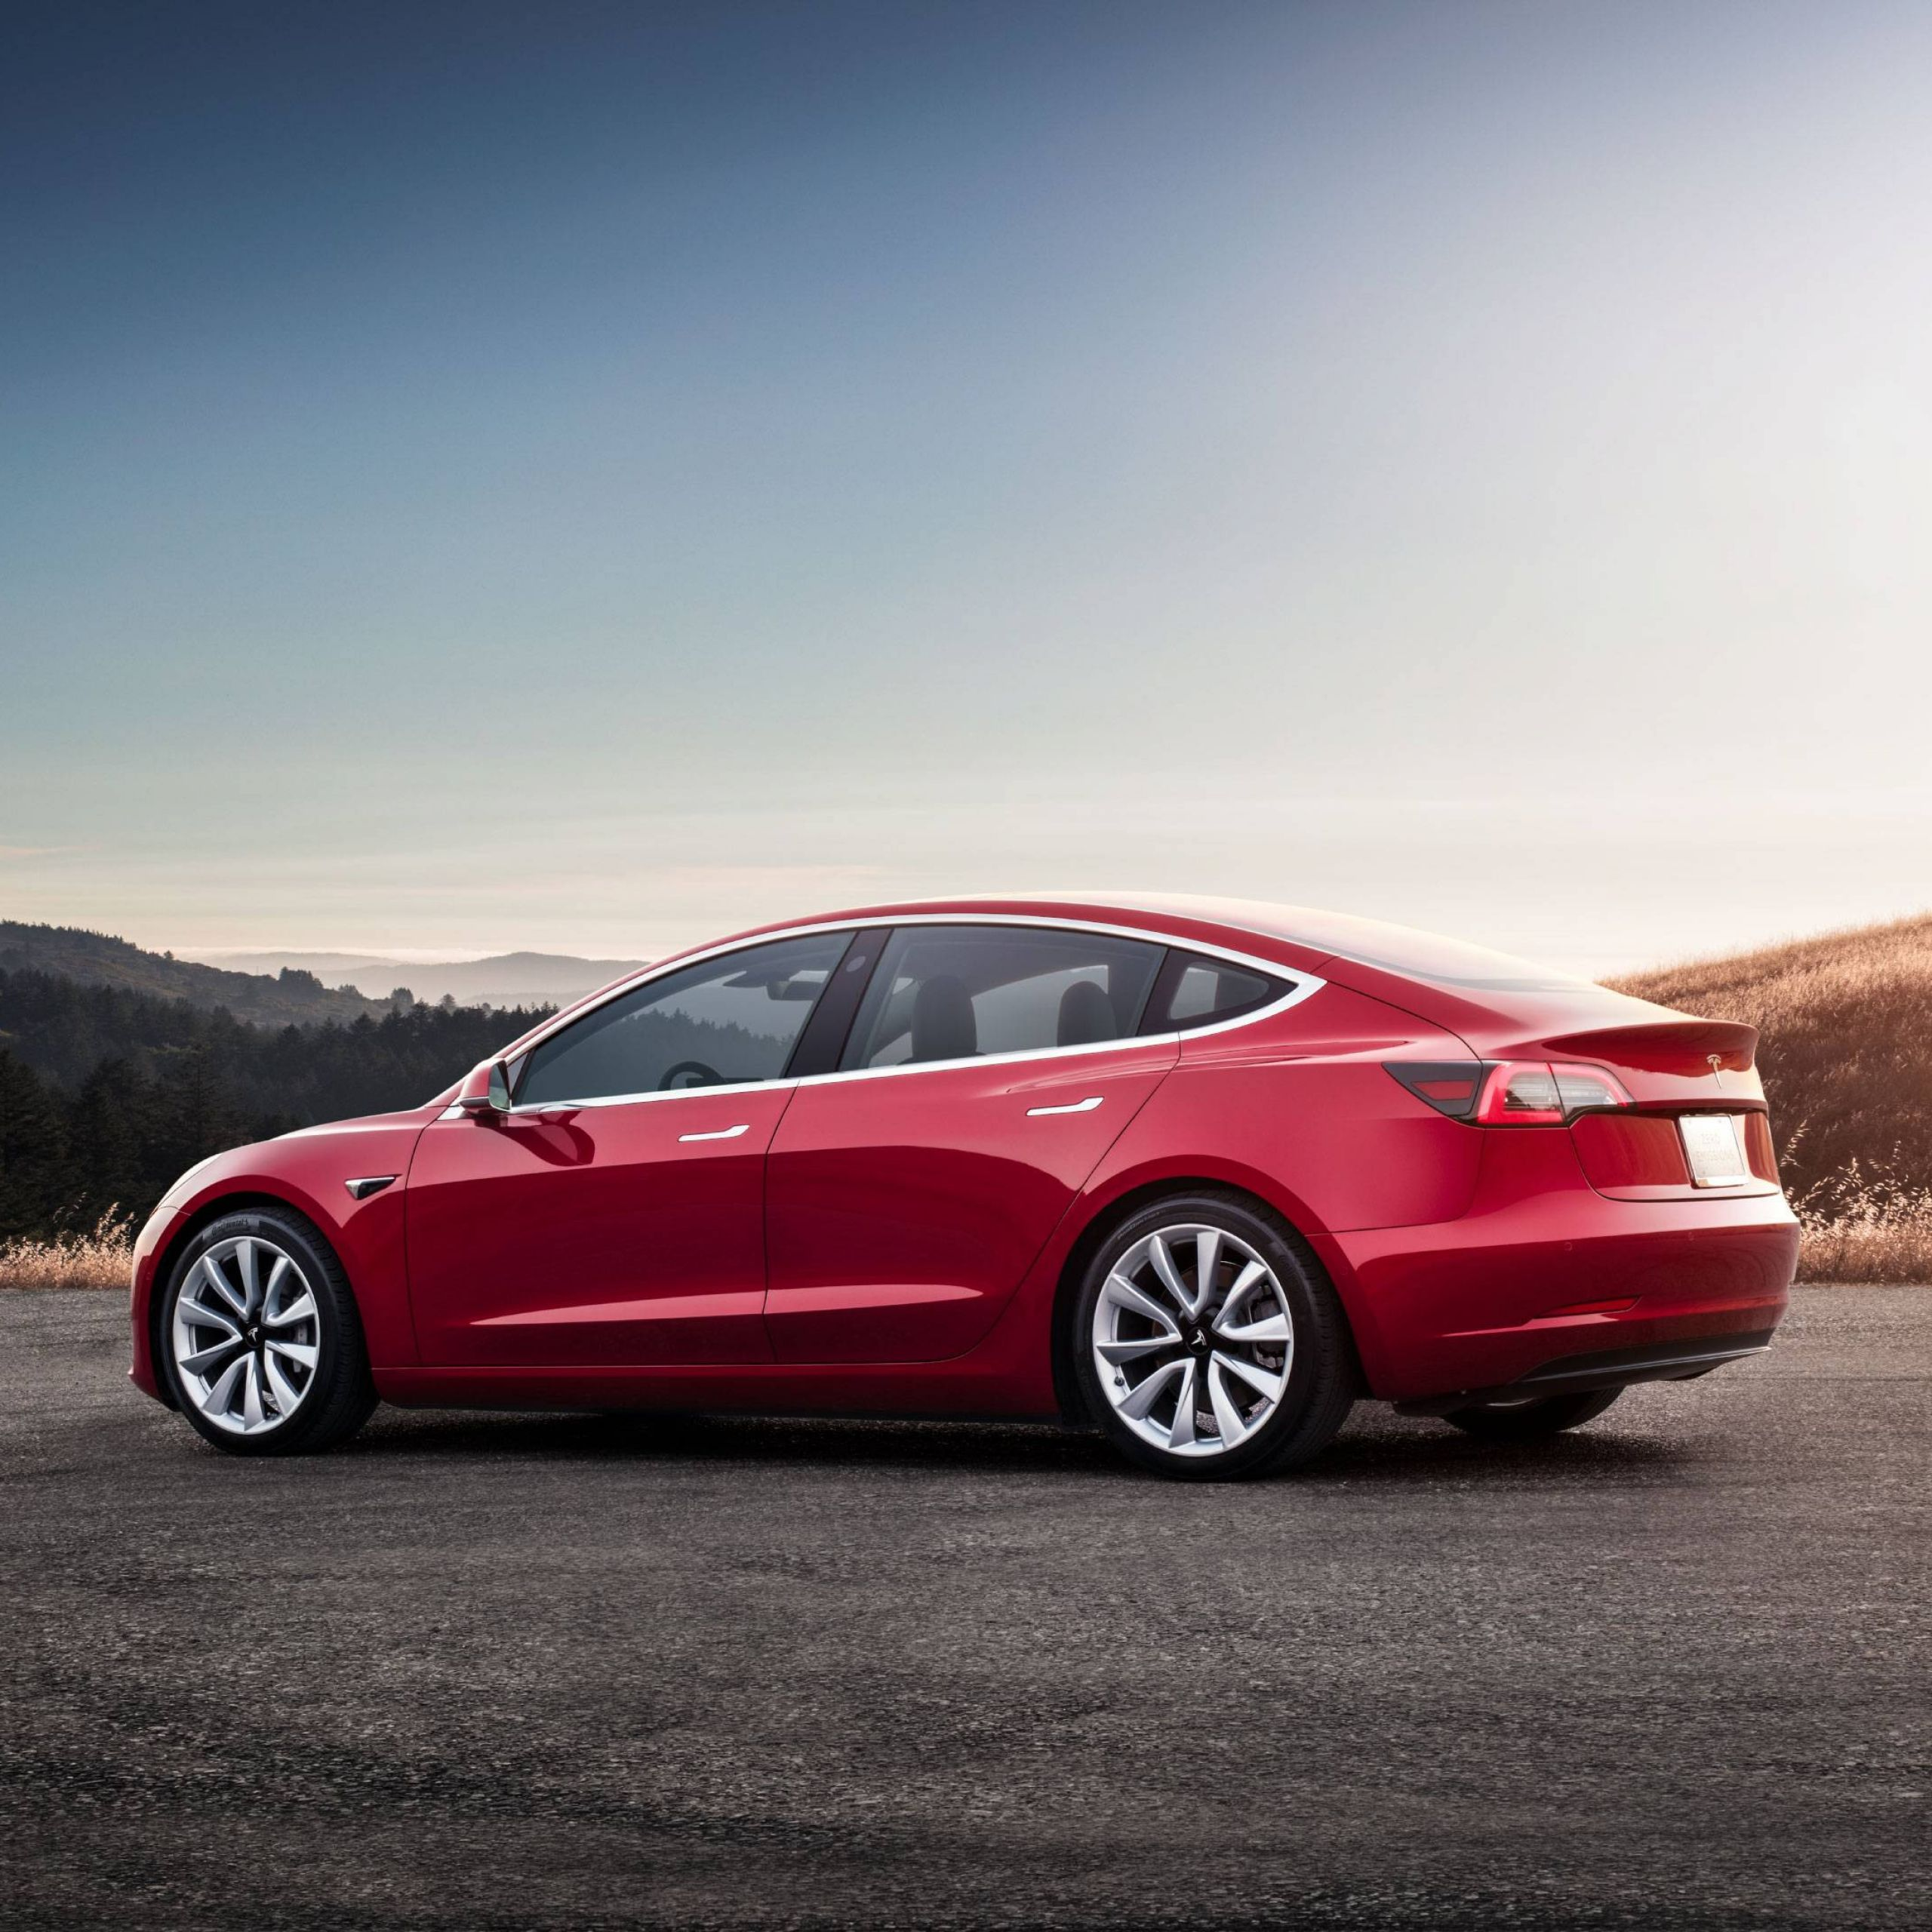 Tesla Hot Wheels Beautiful Tesla Model 3 Review Worth the Wait but Not so Cheap after